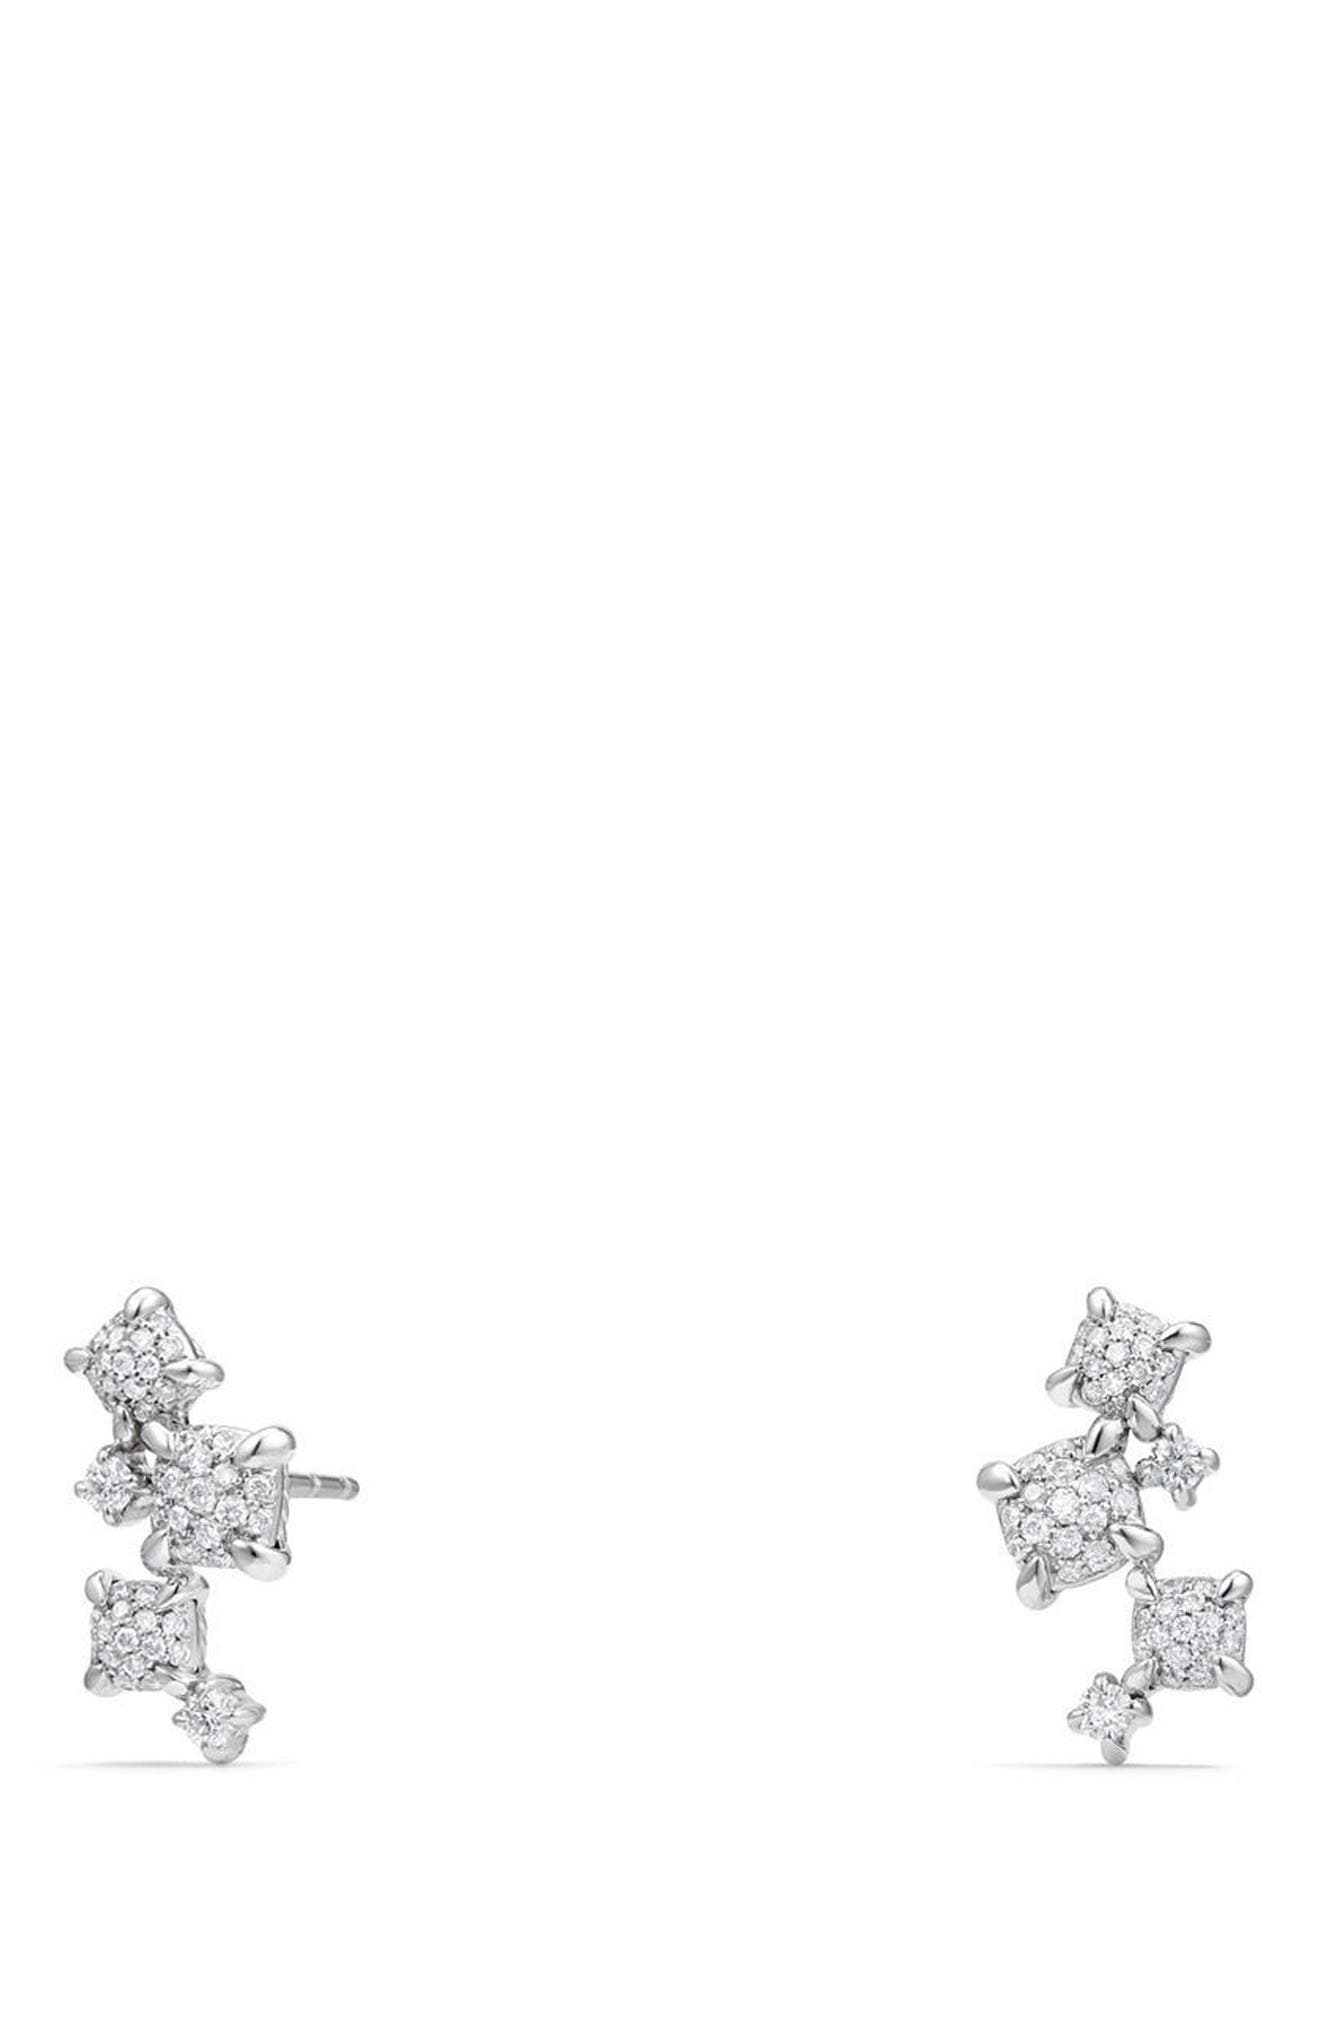 Petite Châtelaine Climber Earrings in 18K Gold with Diamonds,                         Main,                         color, WHITE GOLD